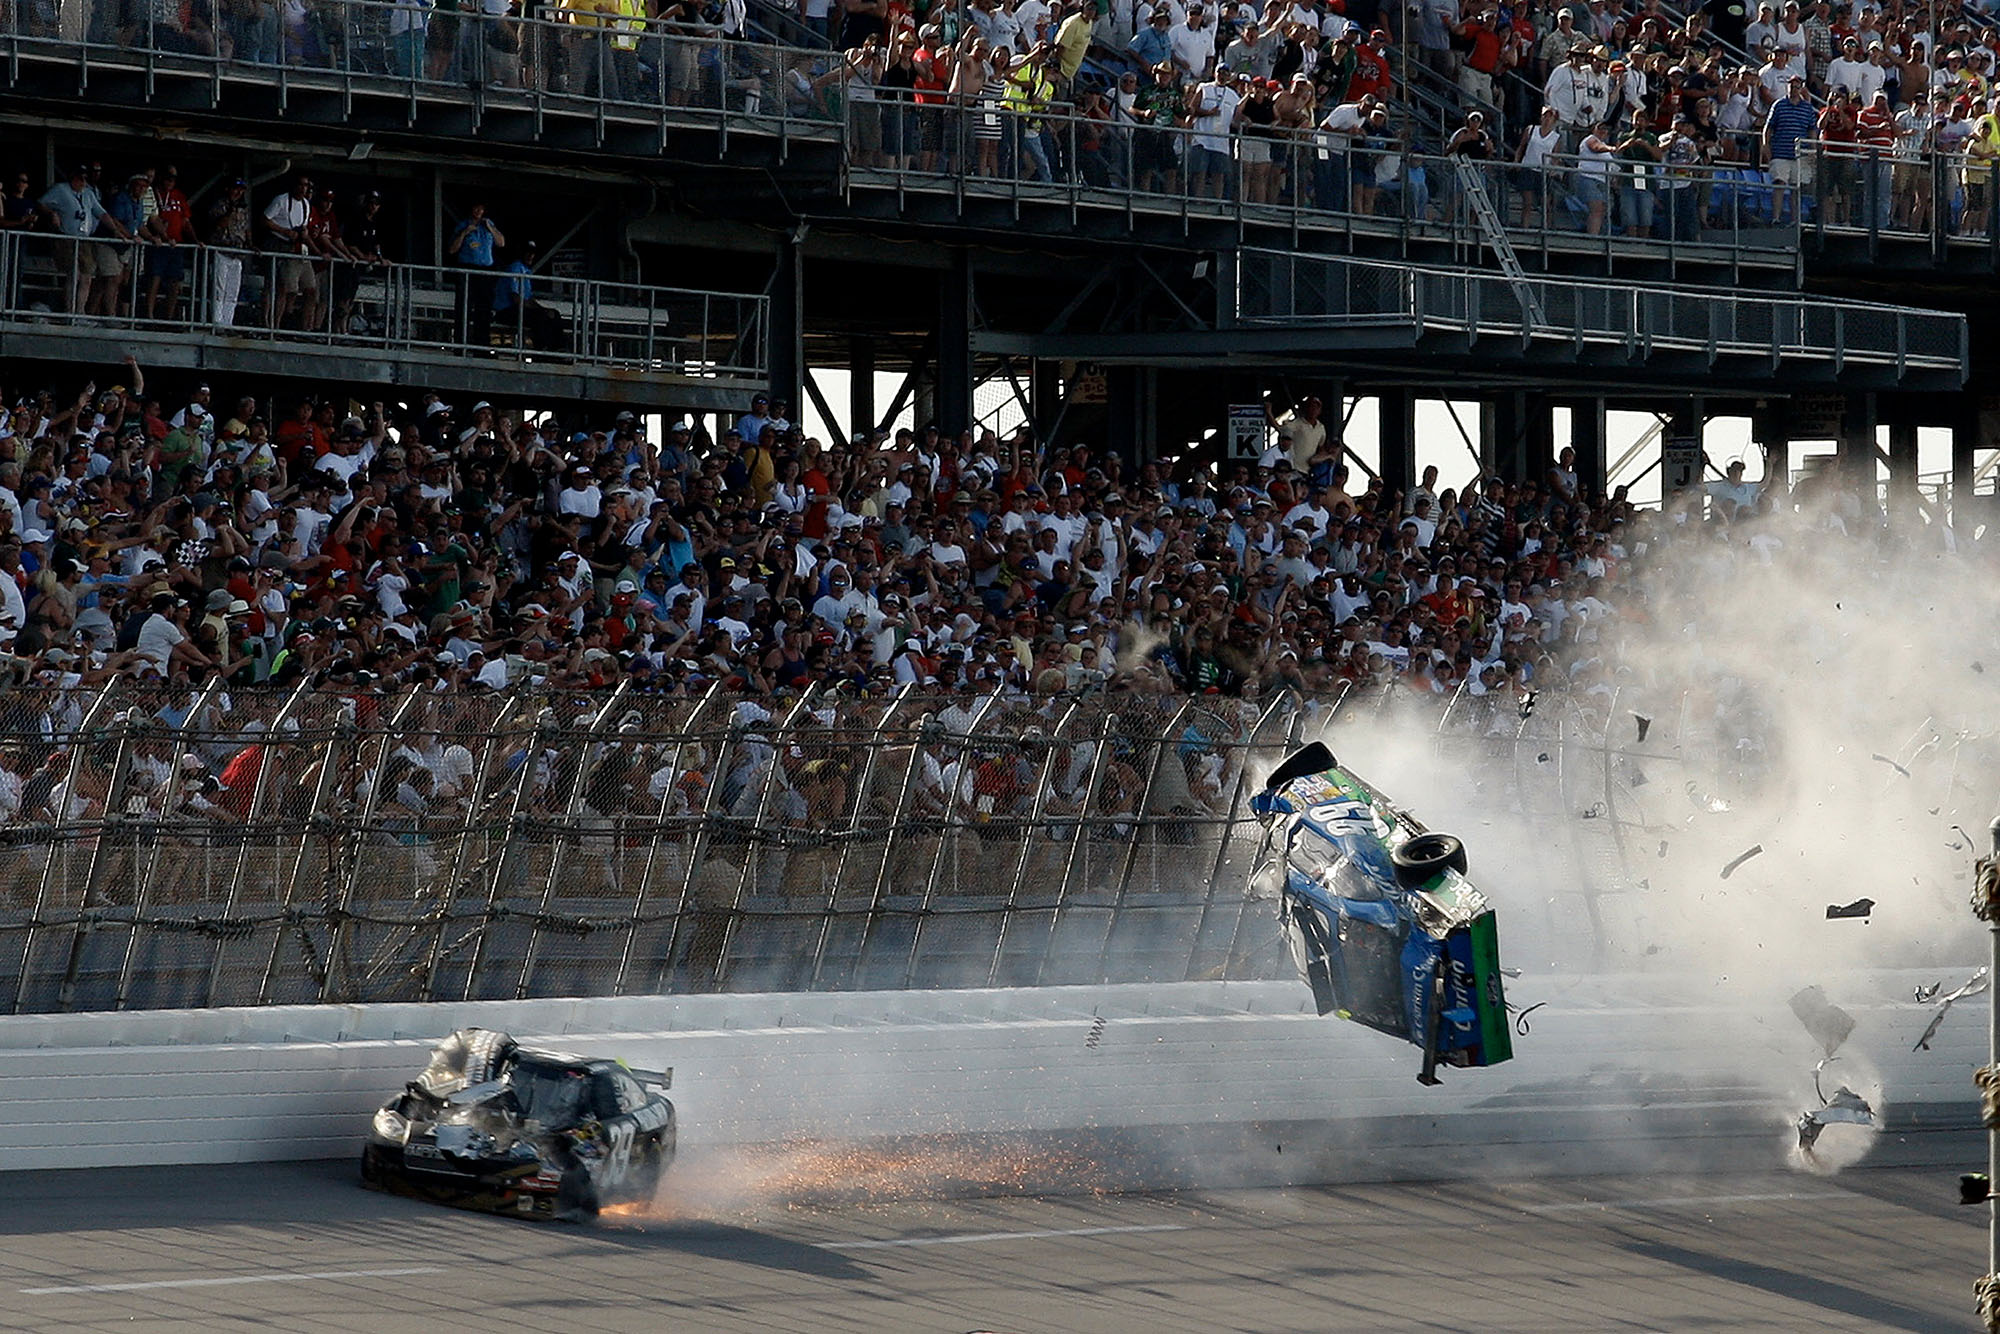 Carl Edwards is launched into the air after contact with Brad Keselowski at Talladega in 2009